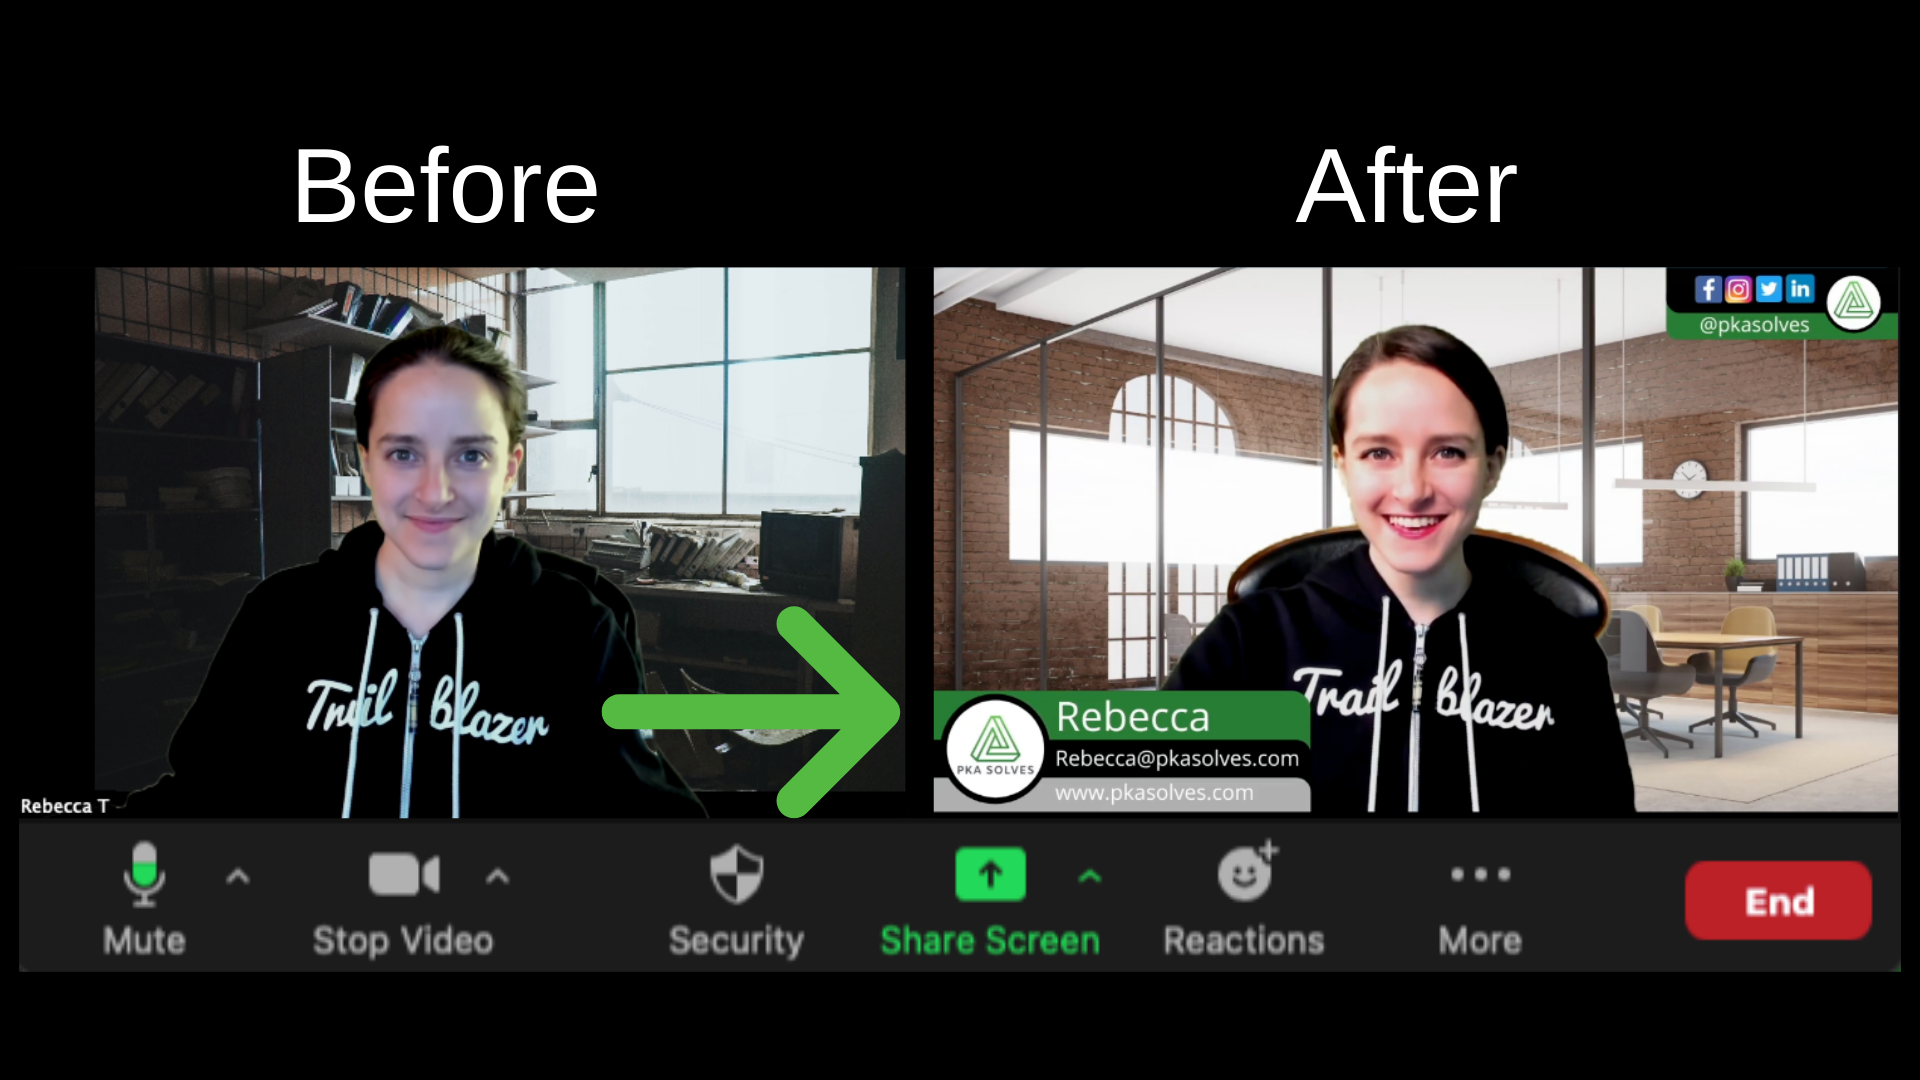 Two pictures side by side of before and after a woman gets Broadcast Ready